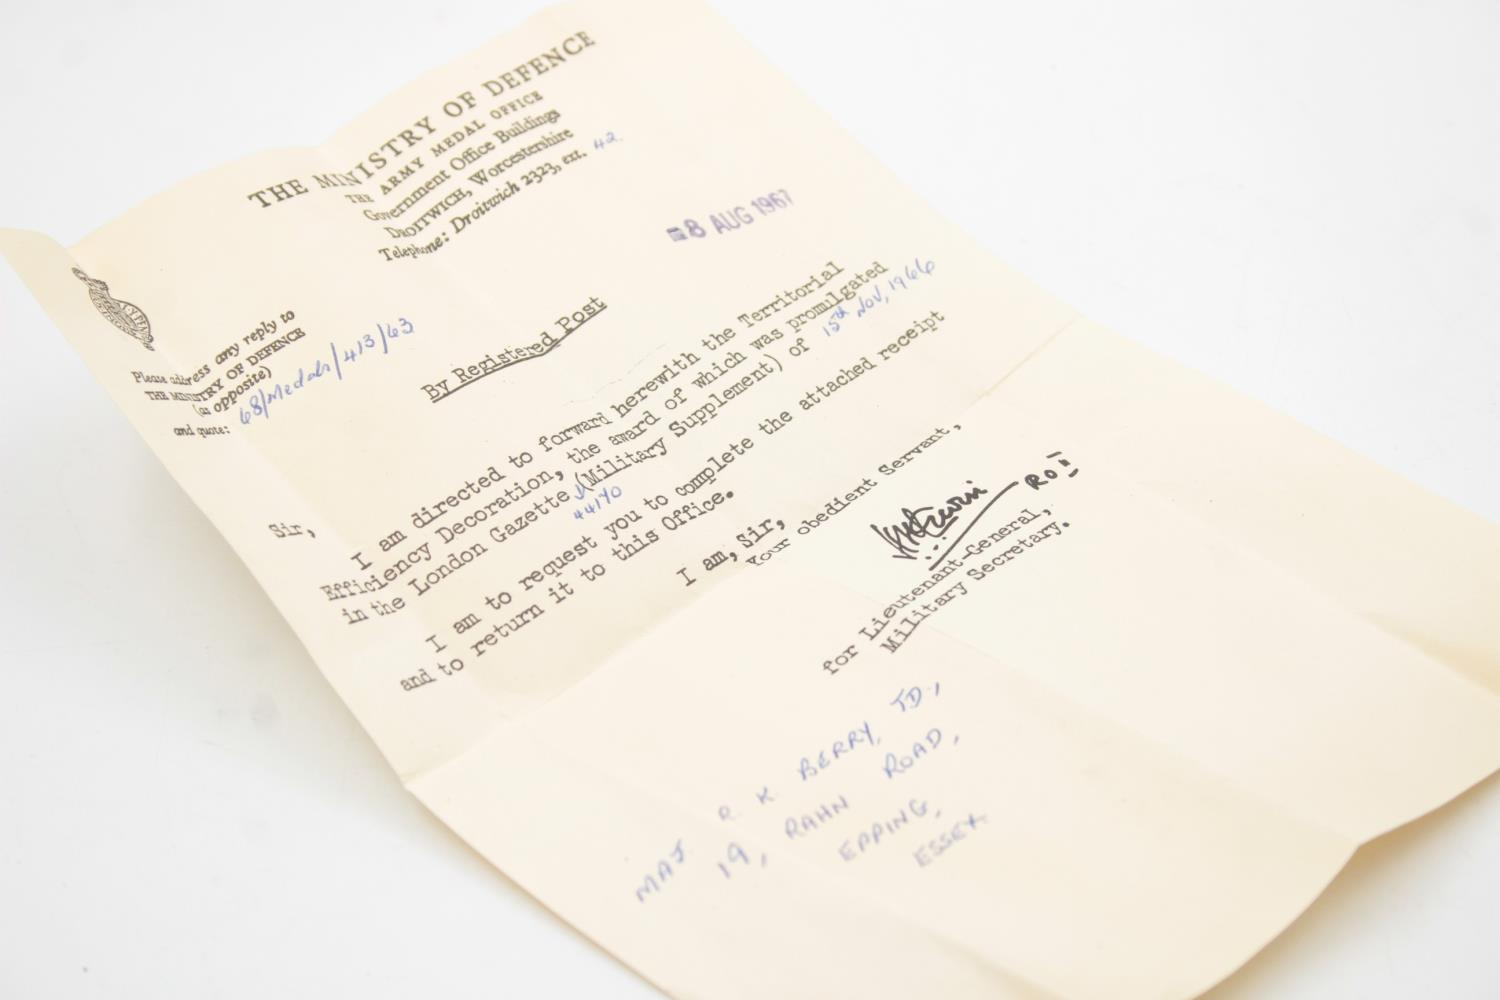 Boxed ERII Officers Territorial Decoration Dated 1966 w/ Award Letter - Image 4 of 5